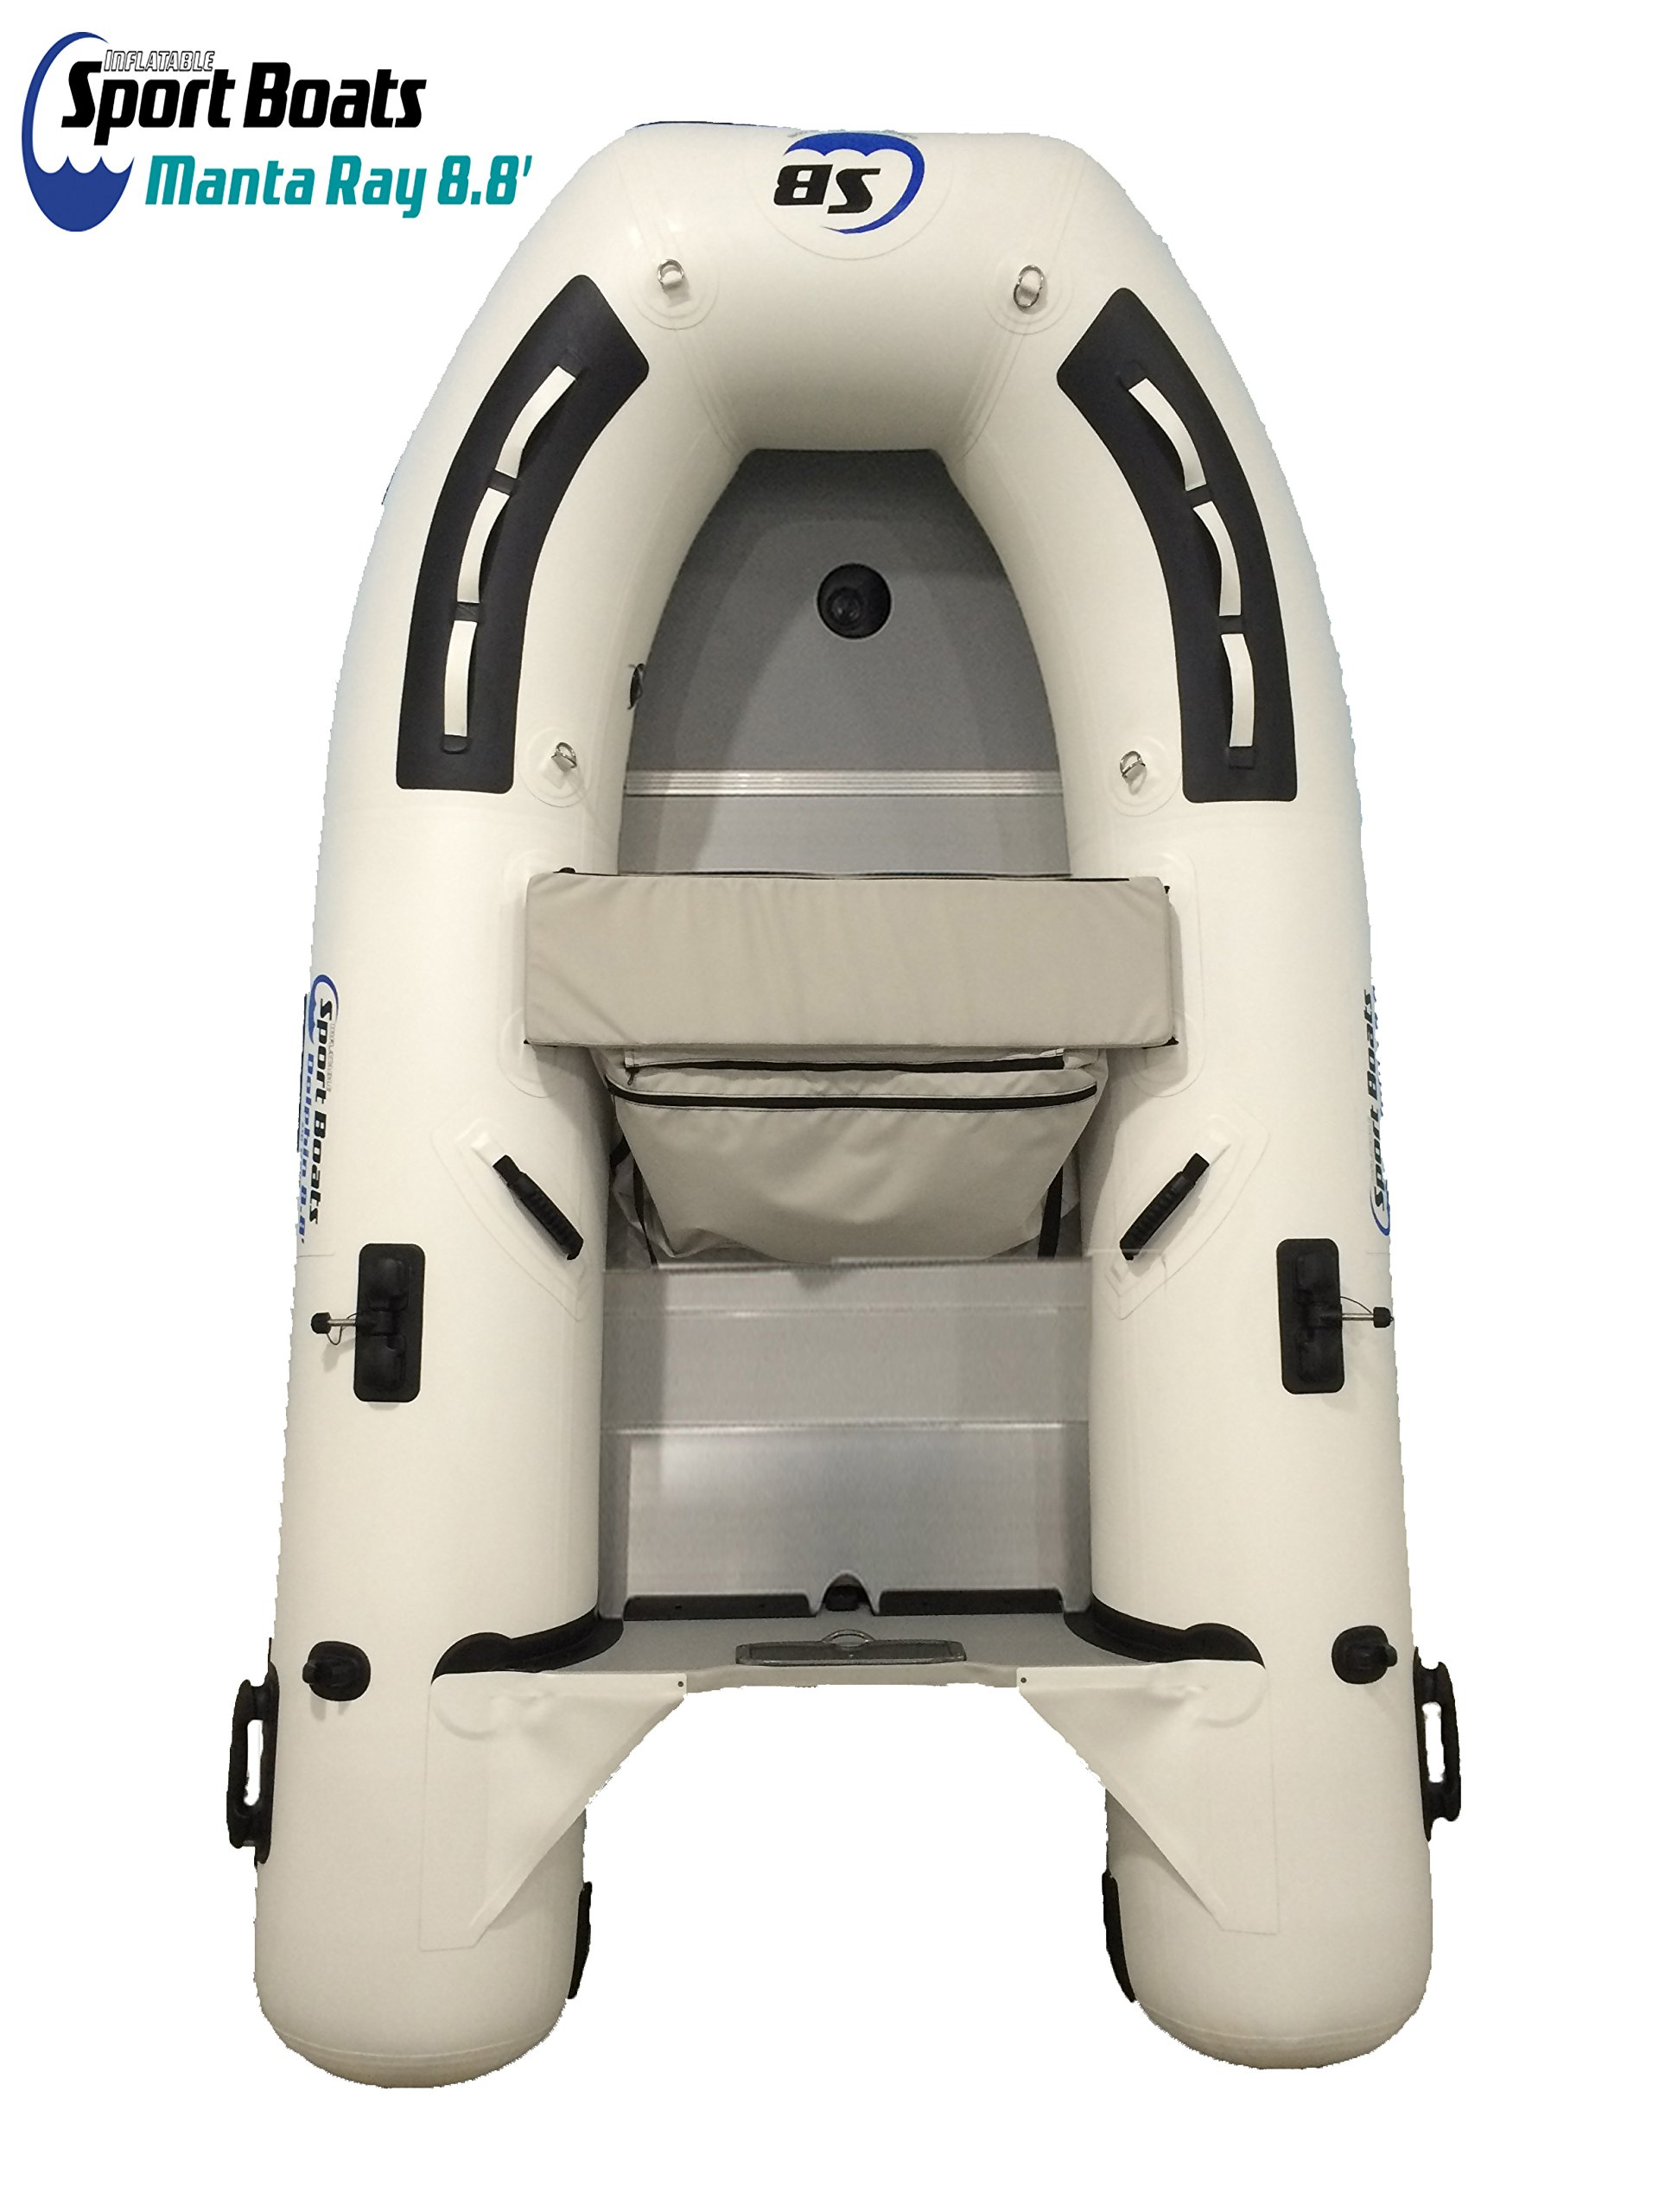 Inflatable Sport Boats Manta Ray 8.8' - Model 270 - Aluminum Floor Dinghy with Seat Bag